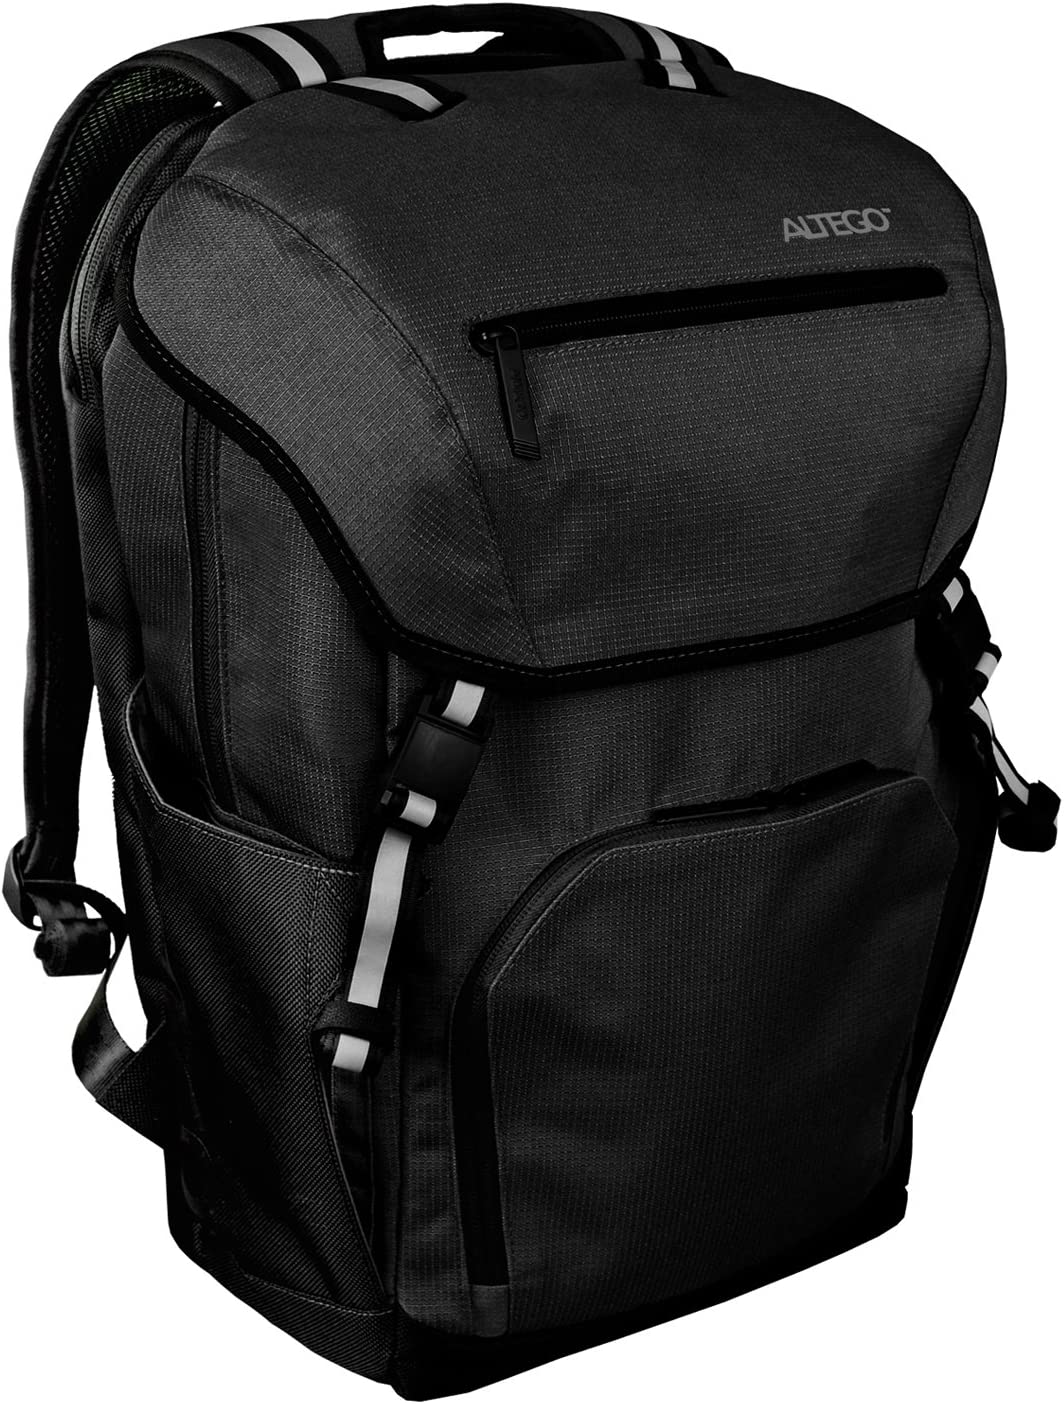 """Altego Polygon Midnight Black Laptop Backpack - Fits Up to 13.3"""" - Rucksack Bag for School, College or Commute (36308)"""